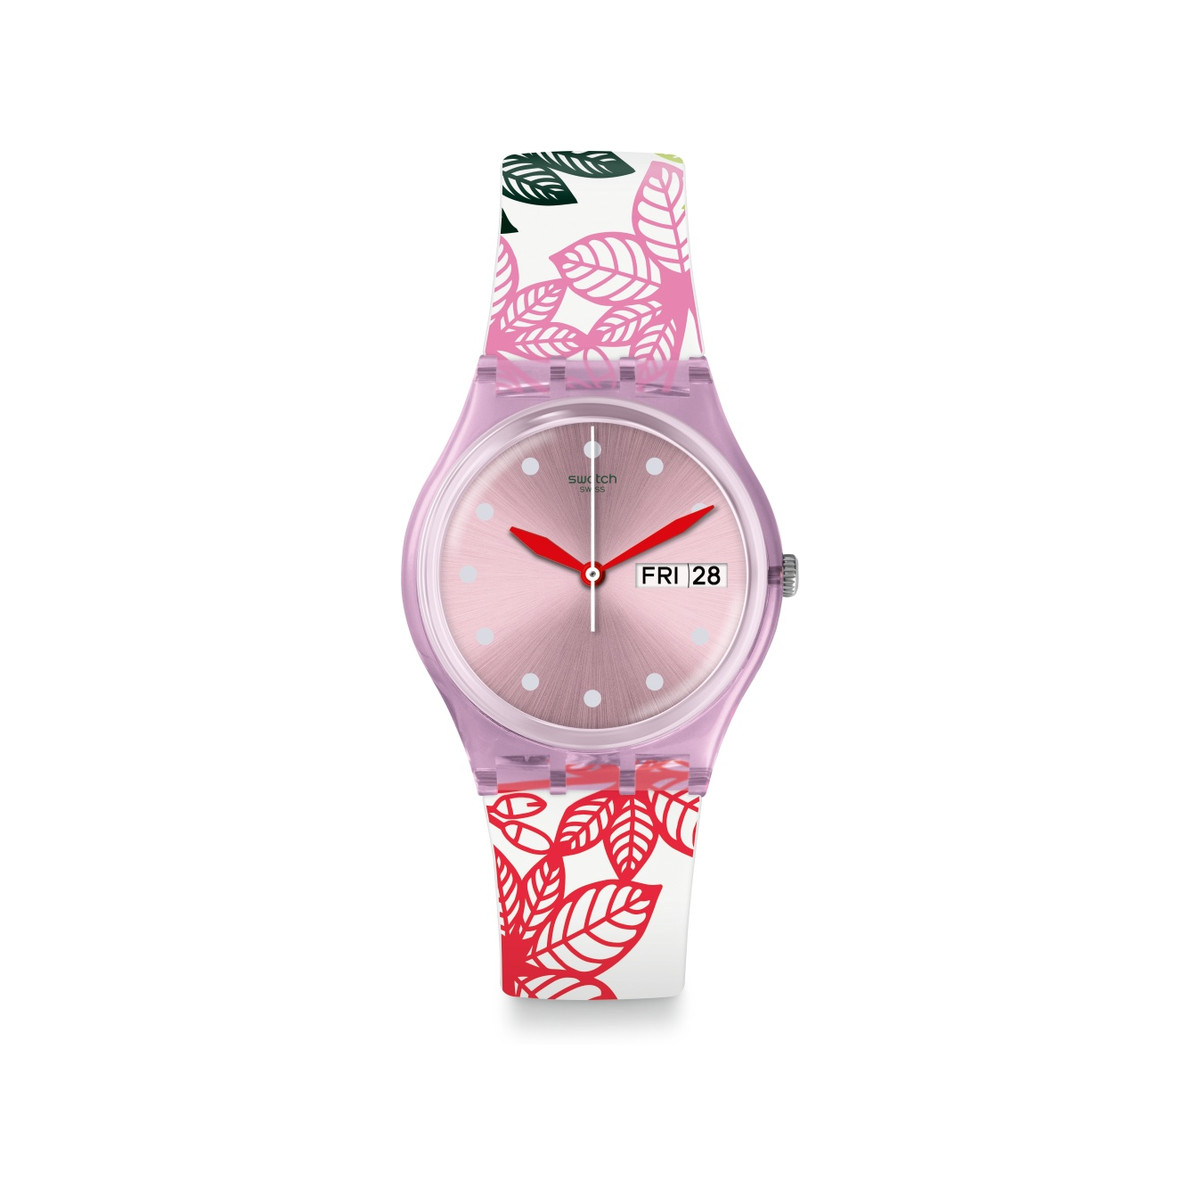 Montre Swatch transformation femme silicone - vue V1